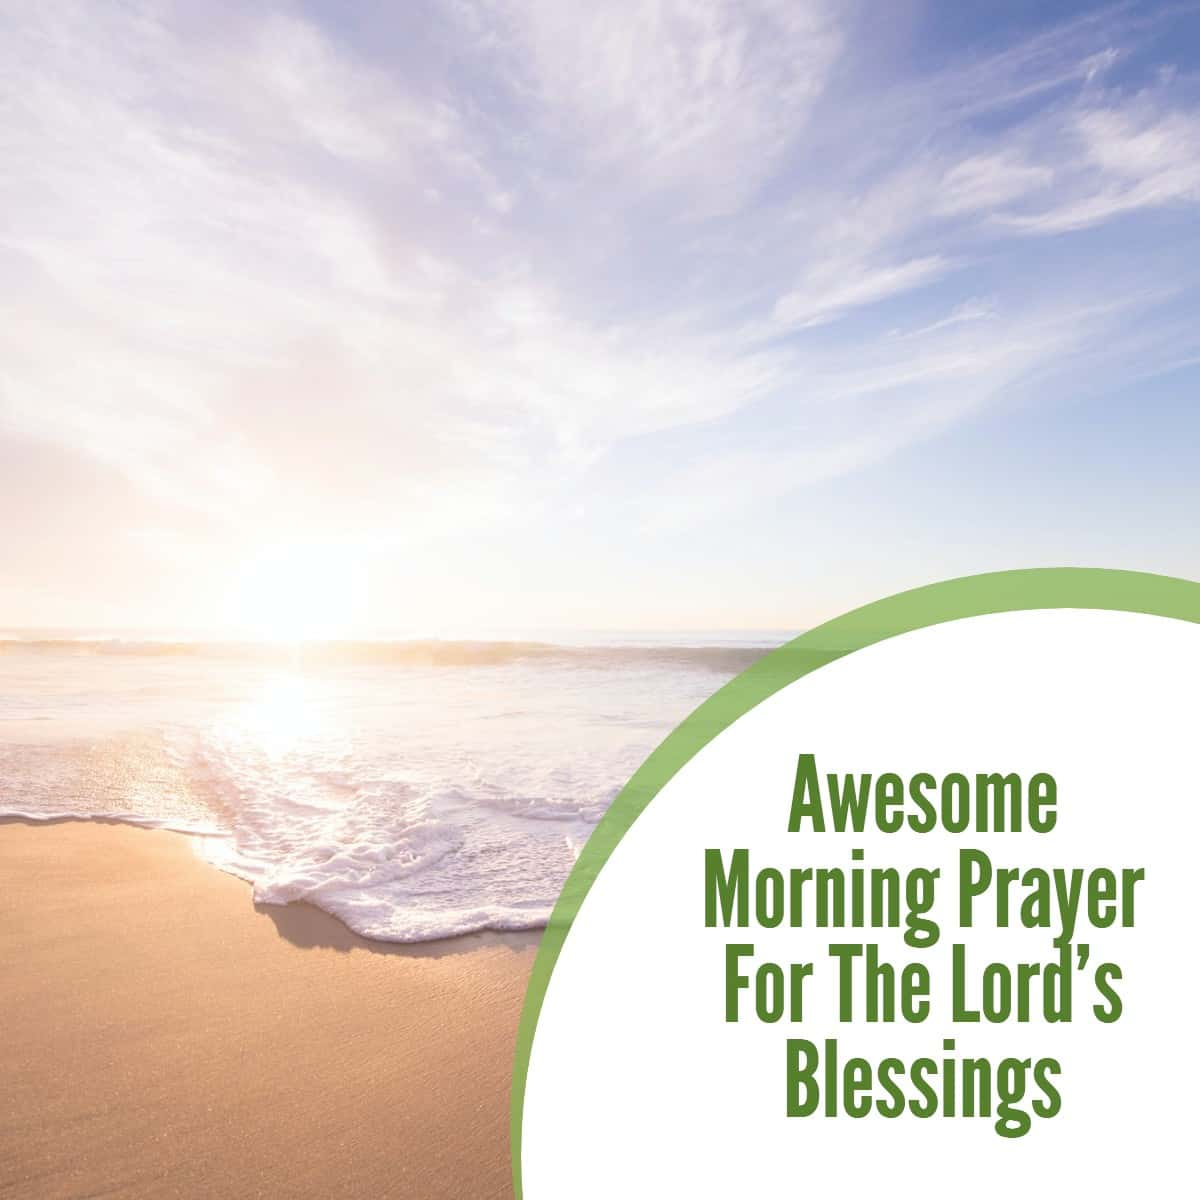 Awesome Morning Prayer For The Lord's Blessings